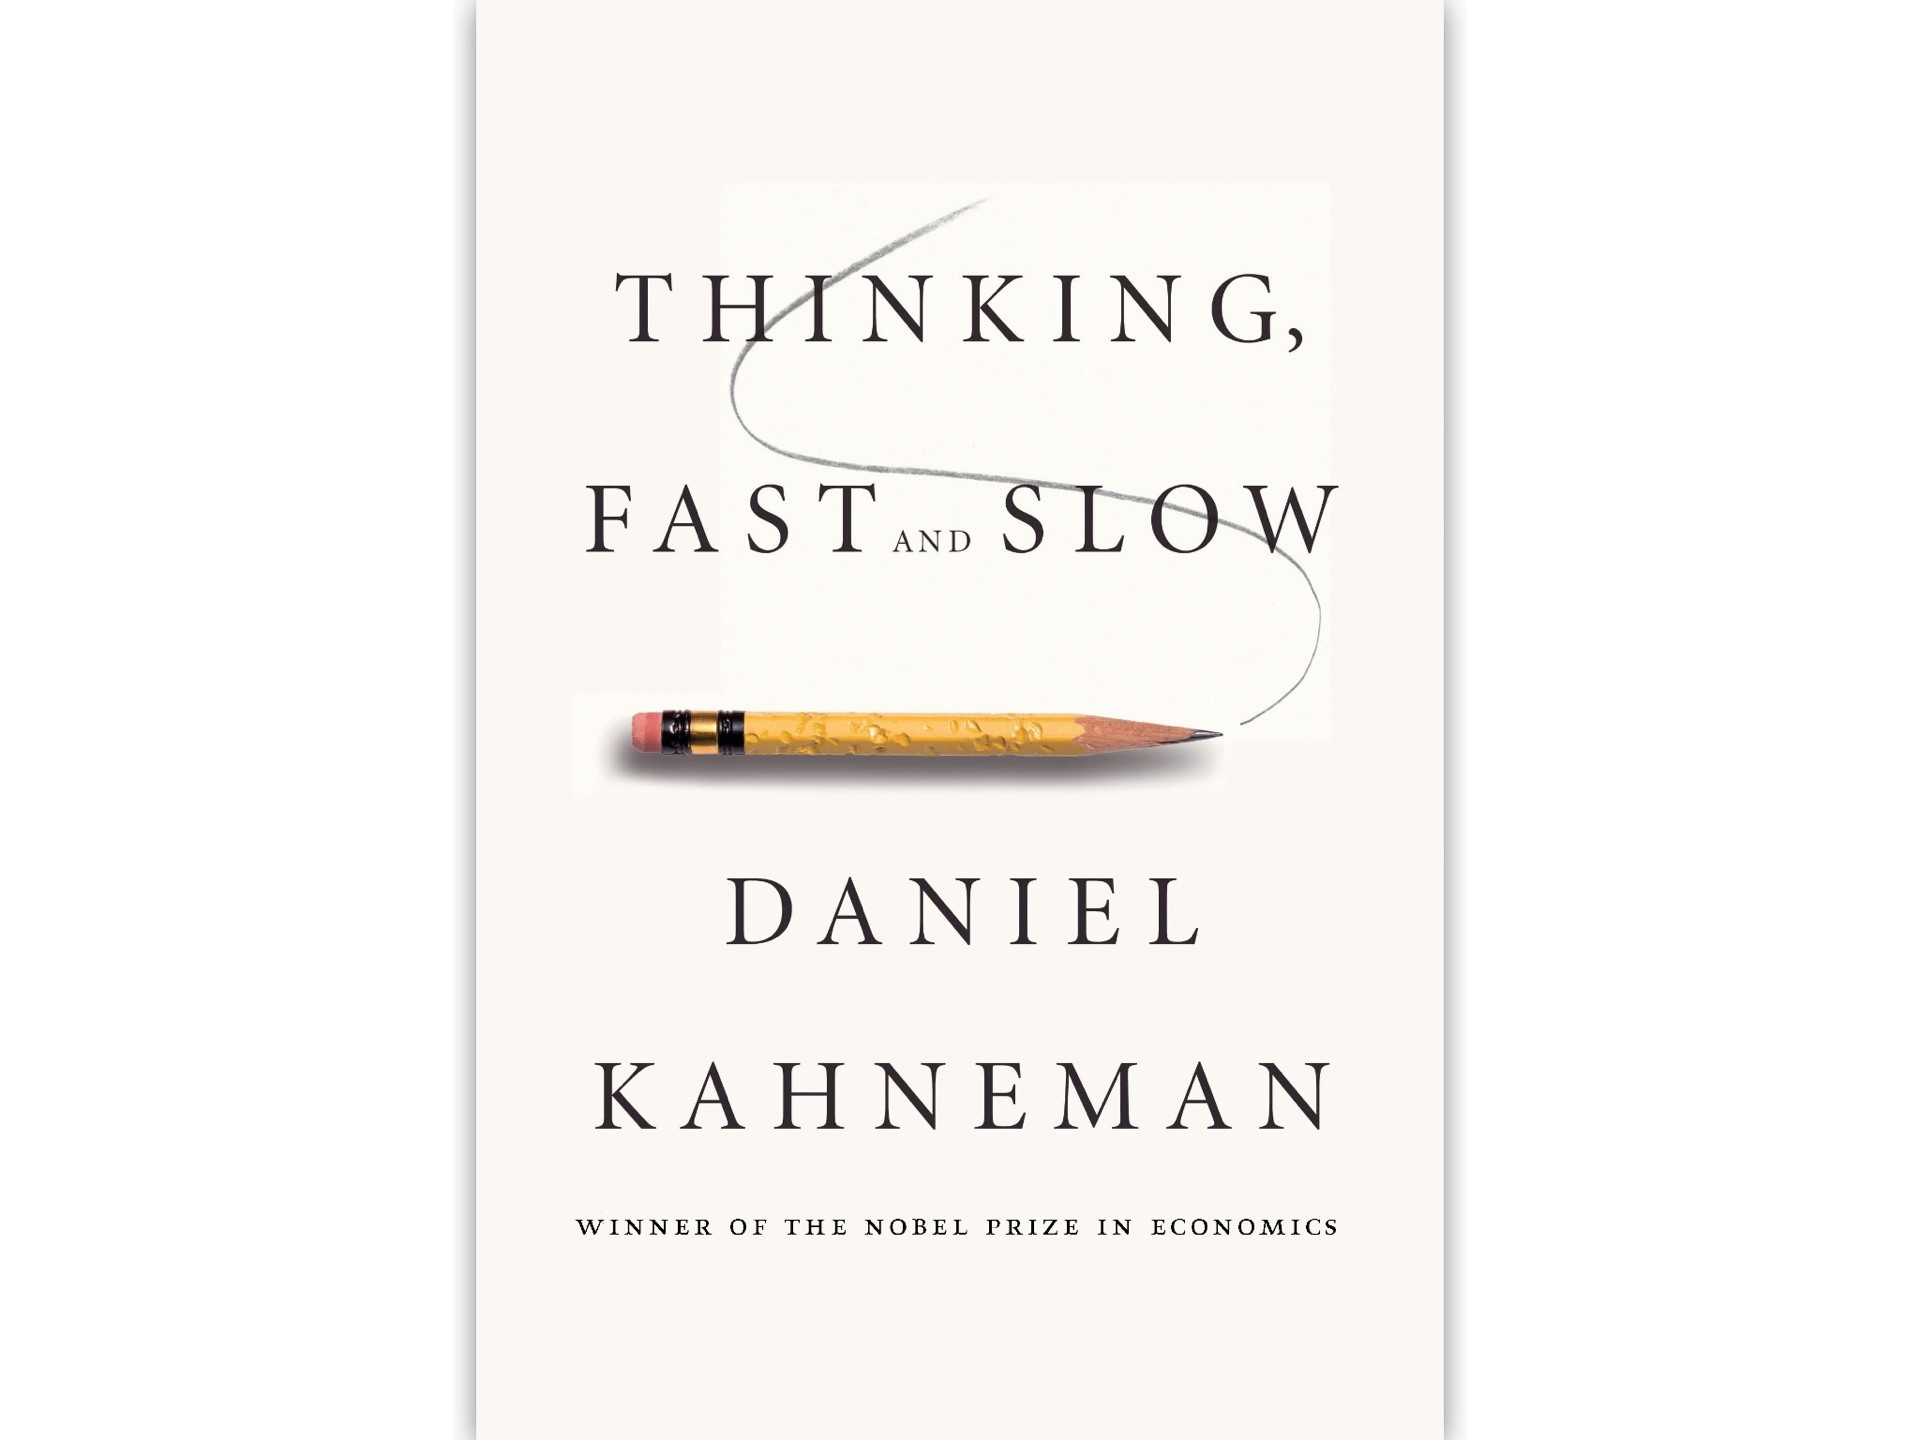 Thinking, Fast and Slow by Daniel Kahneman.